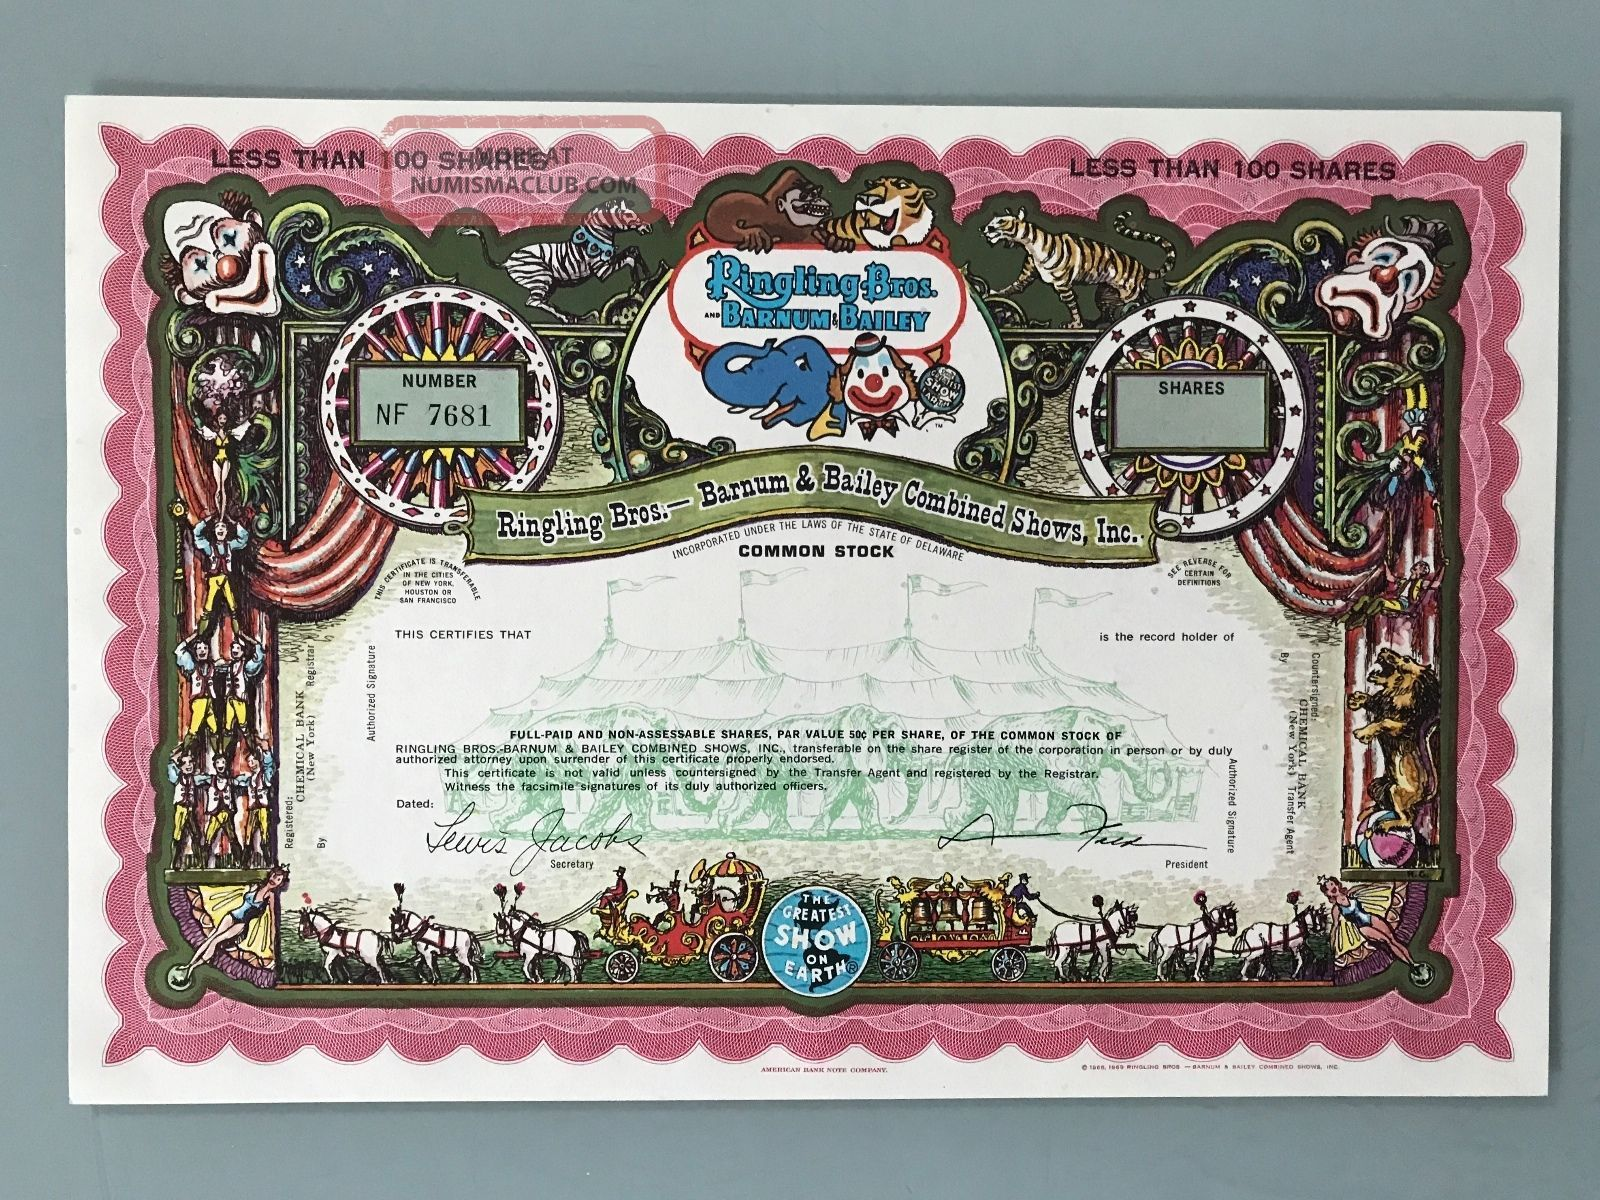 Ringling Brothers Barnum Bailey Specimen Stock Certificate Uncirculated Stocks & Bonds, Scripophily photo